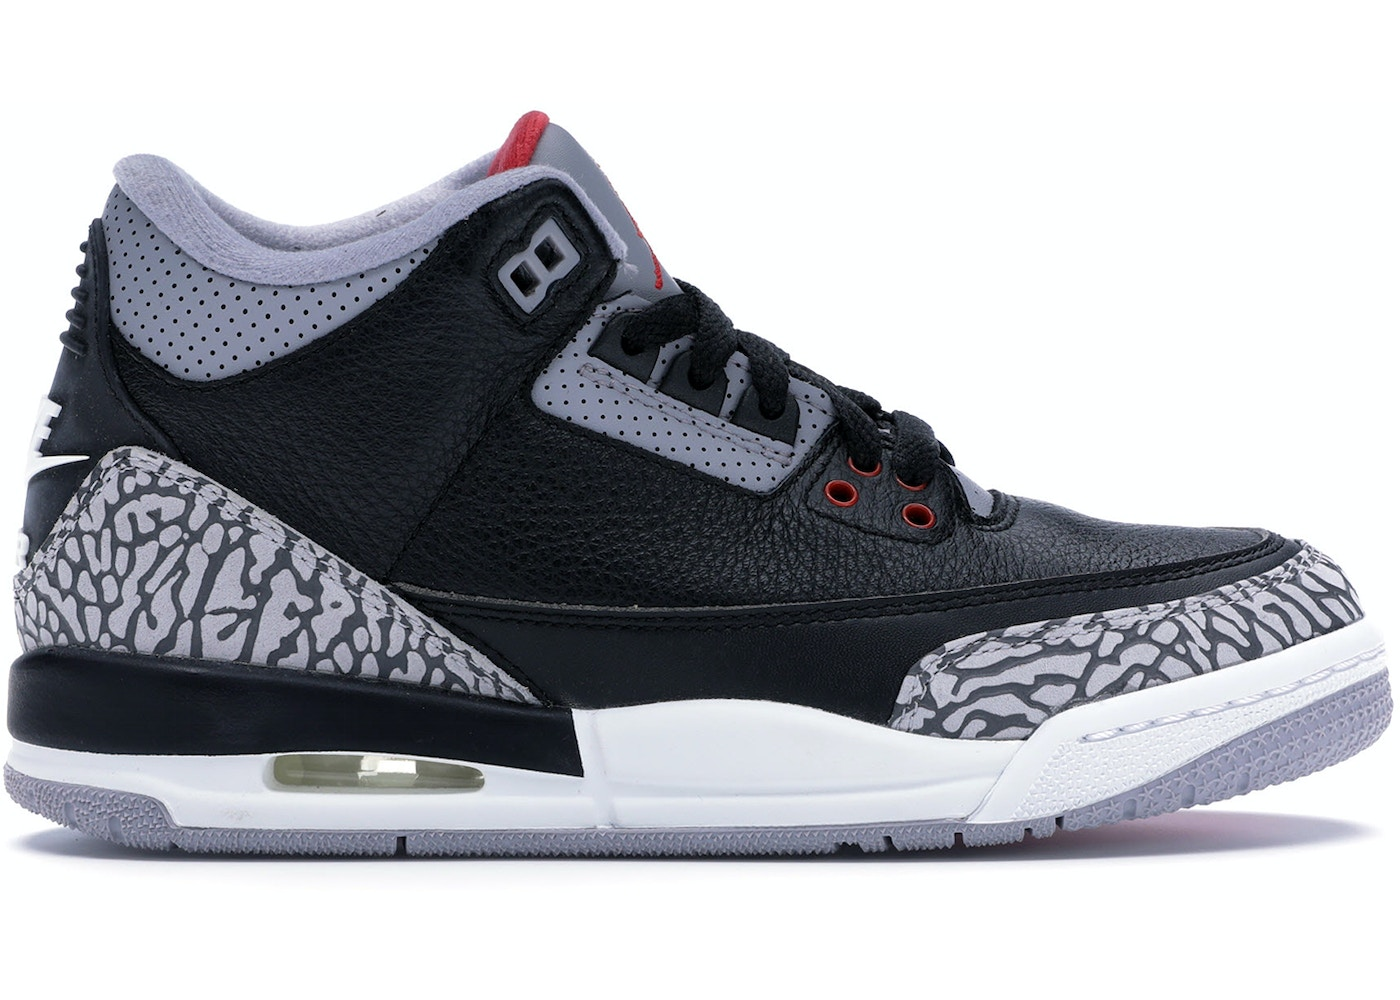 ee6689ed39787f Jordan 3 Retro Black Cement 2018 (GS) - 854261-001